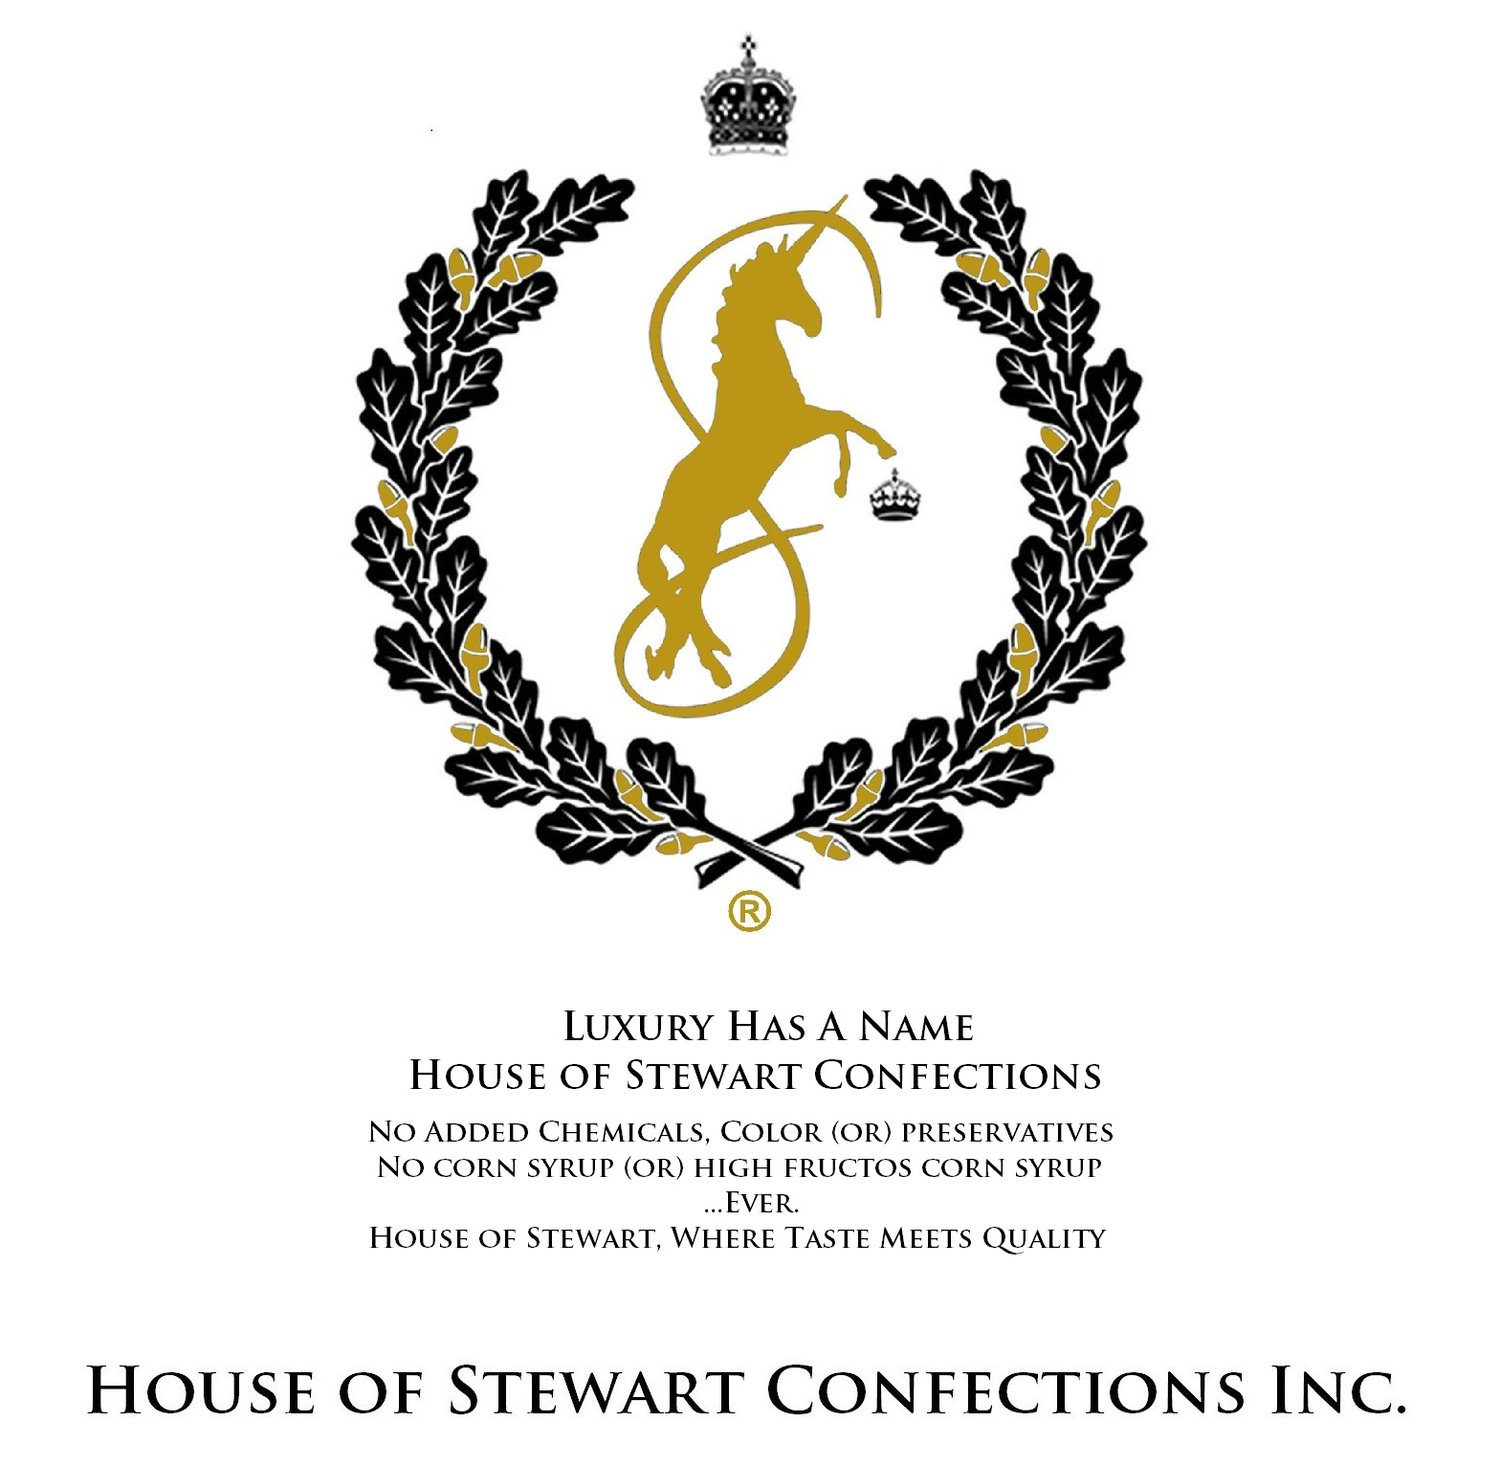 House of Stewart Confections Inc.